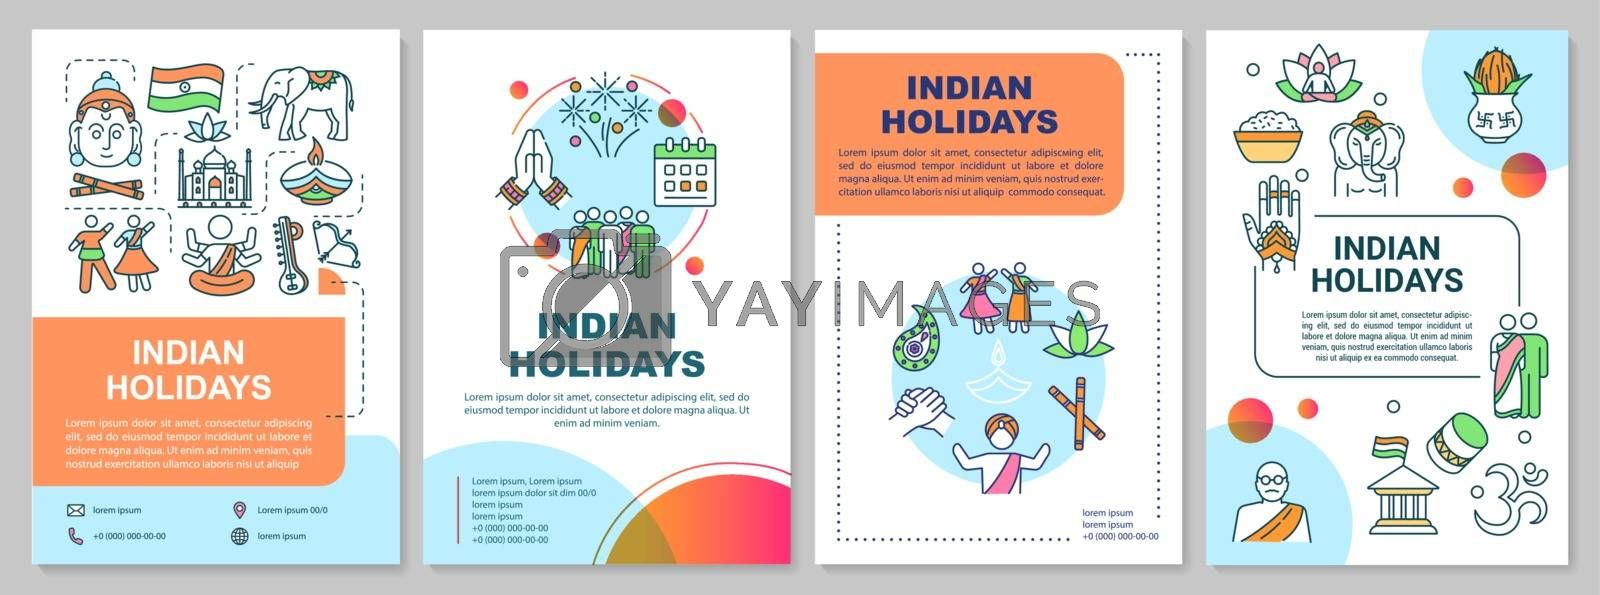 Indian holidays brochure template. National festivals in India flyer, booklet, leaflet print, cover design with linear icons. Vector layouts for magazines, annual reports, advertising posters